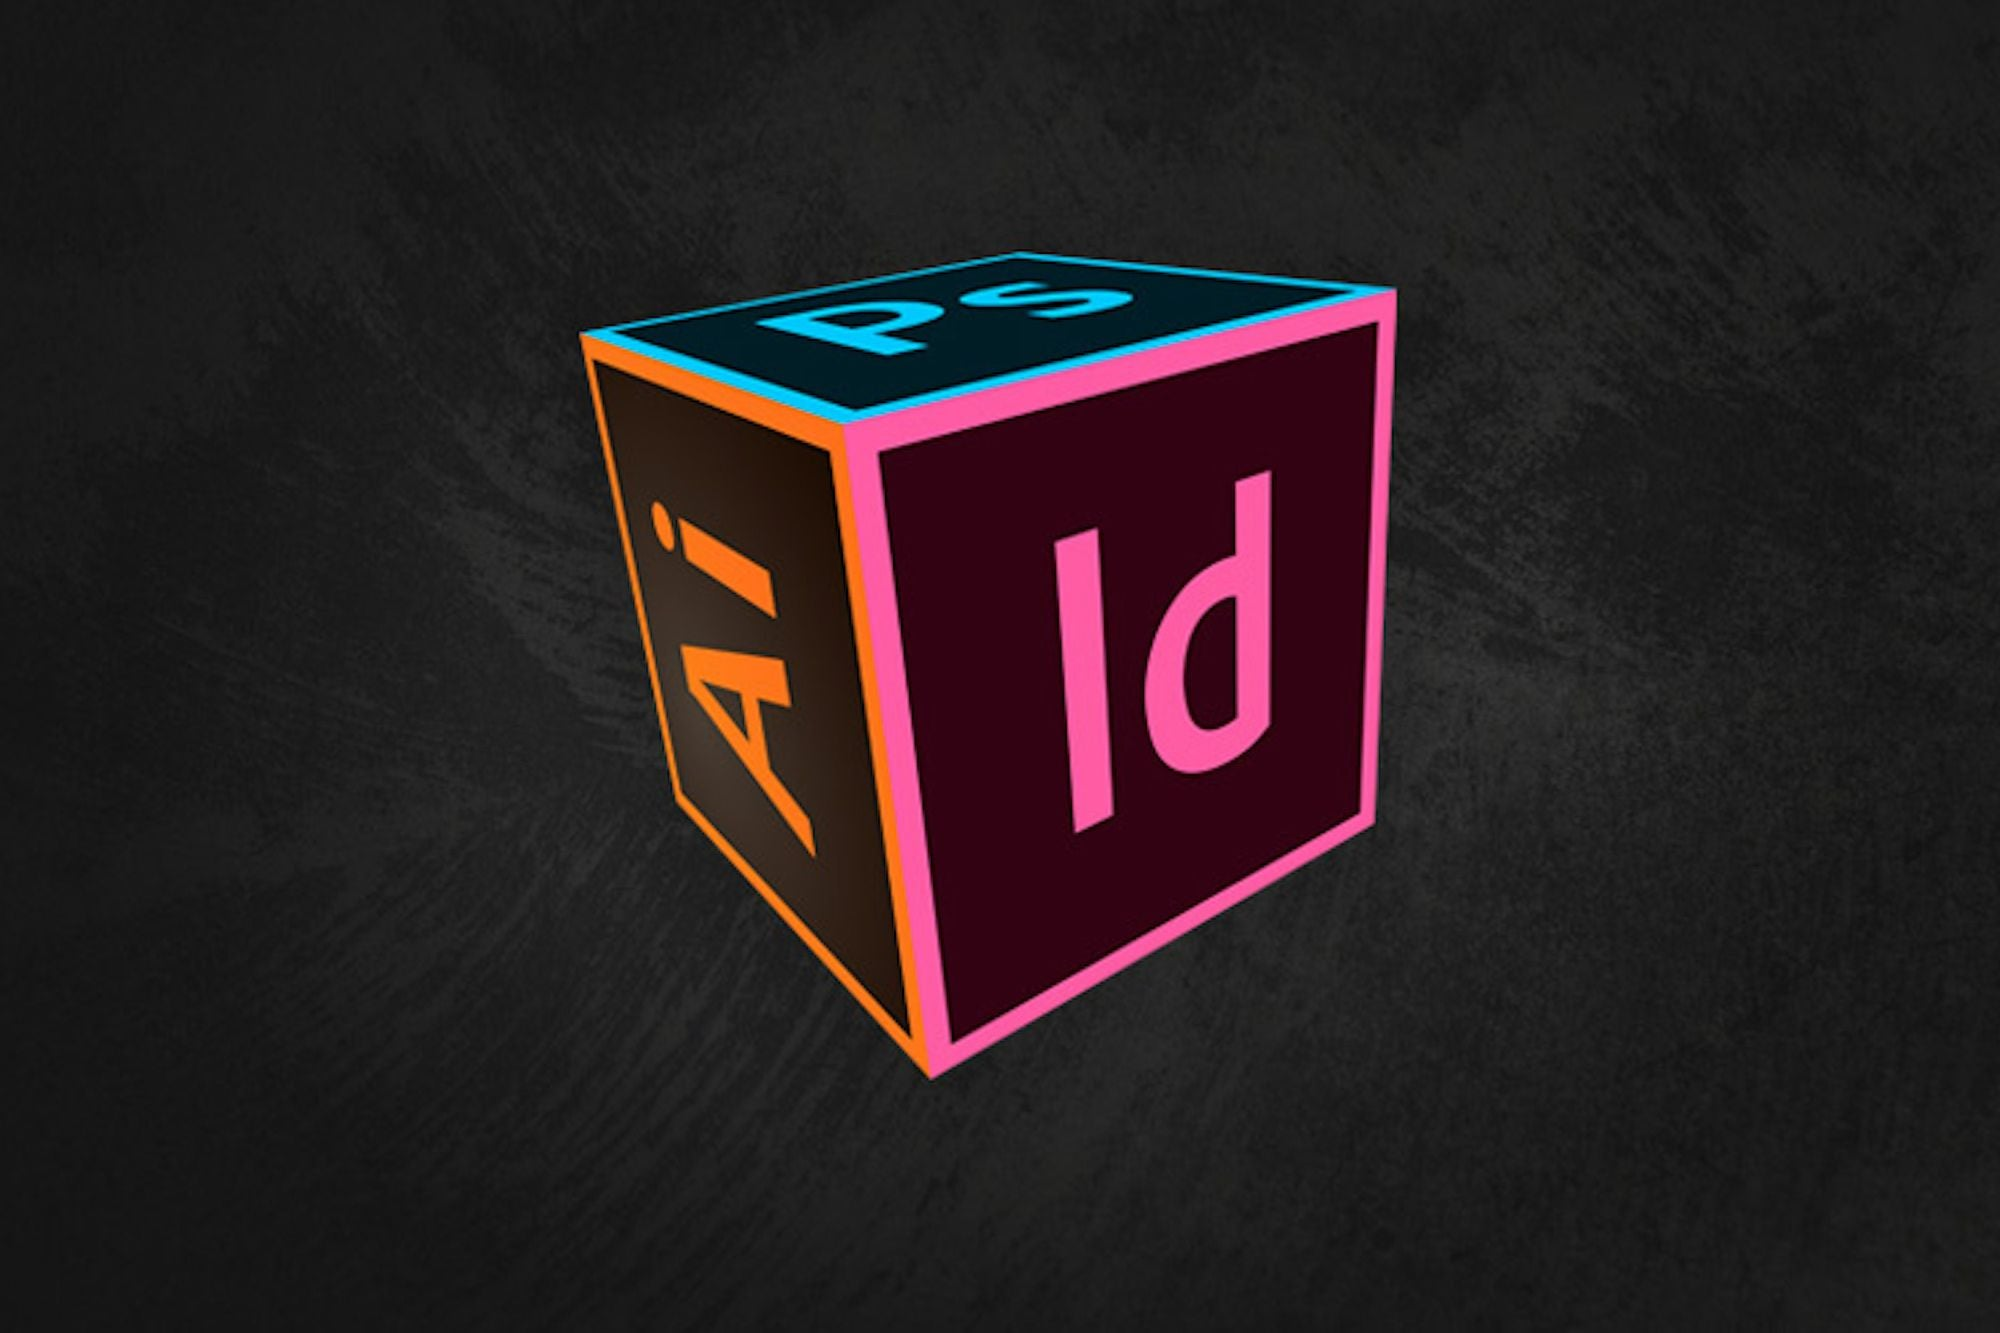 Learn Adobe Photoshop, Illustrator, and InDesign For Less Than $35